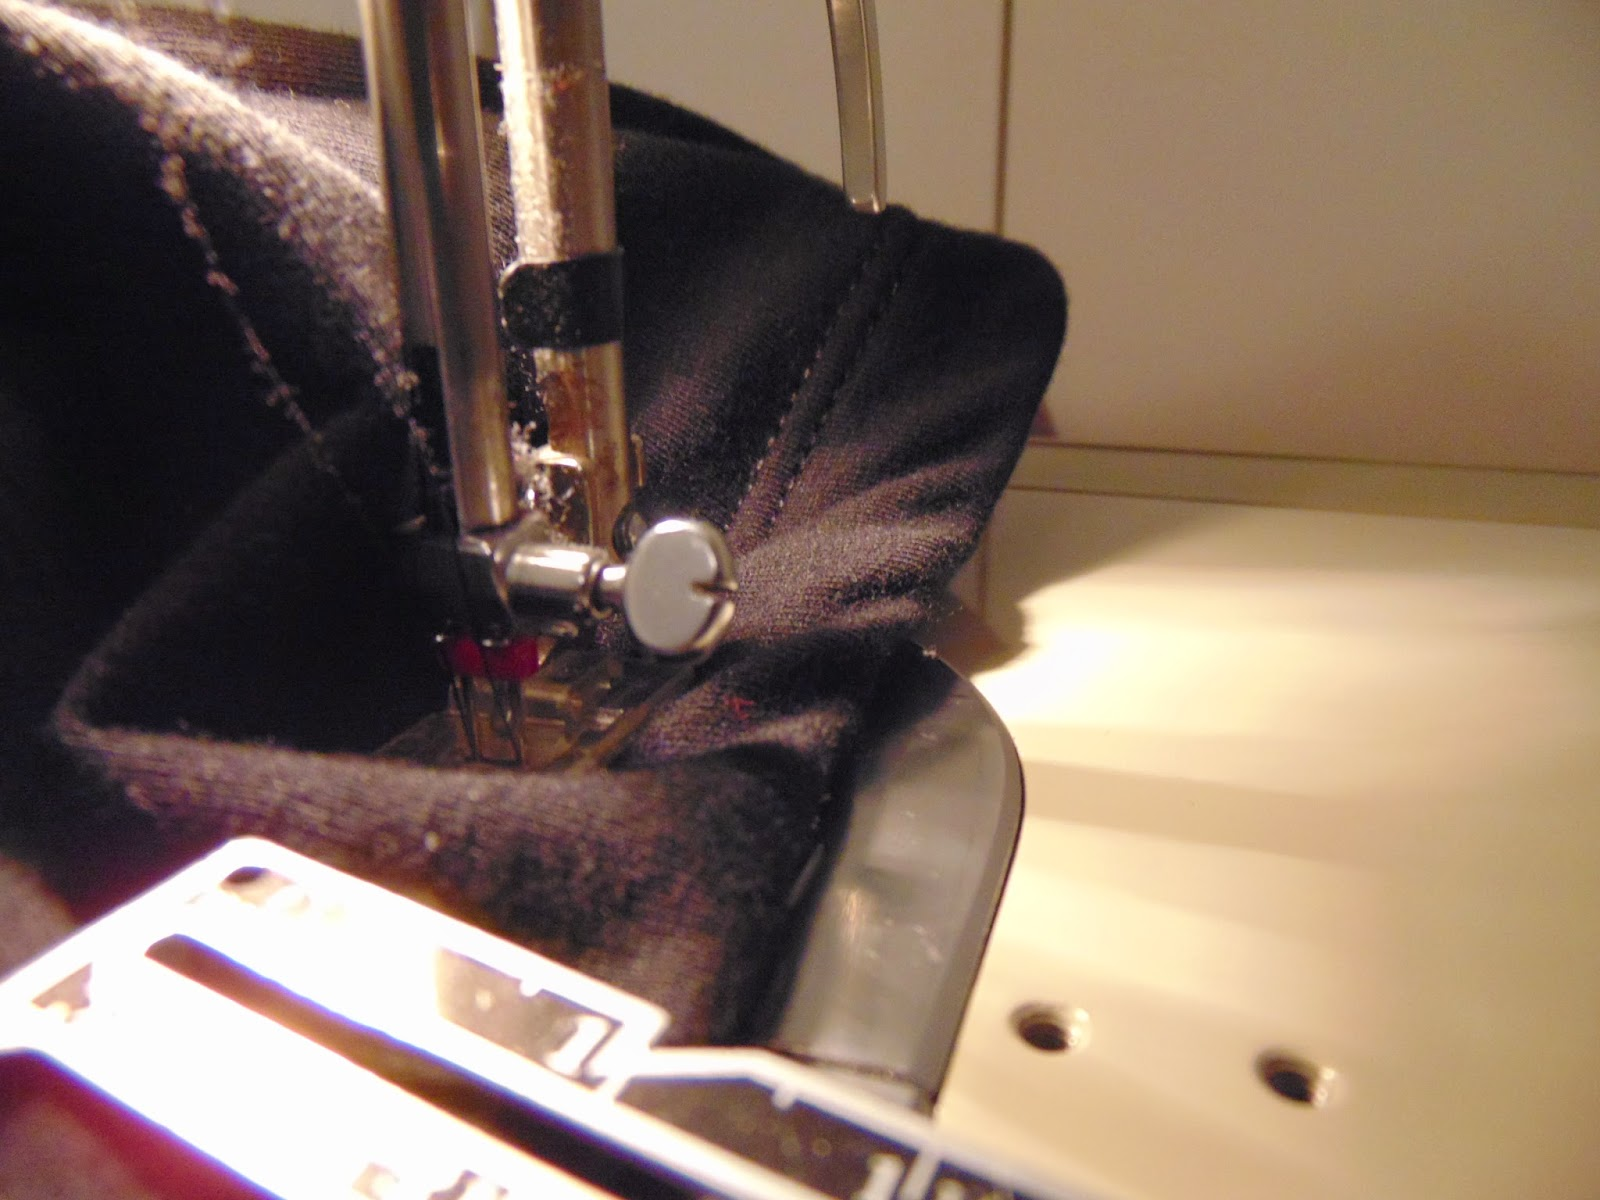 Close up of stitching in progress with double needle on knit pants